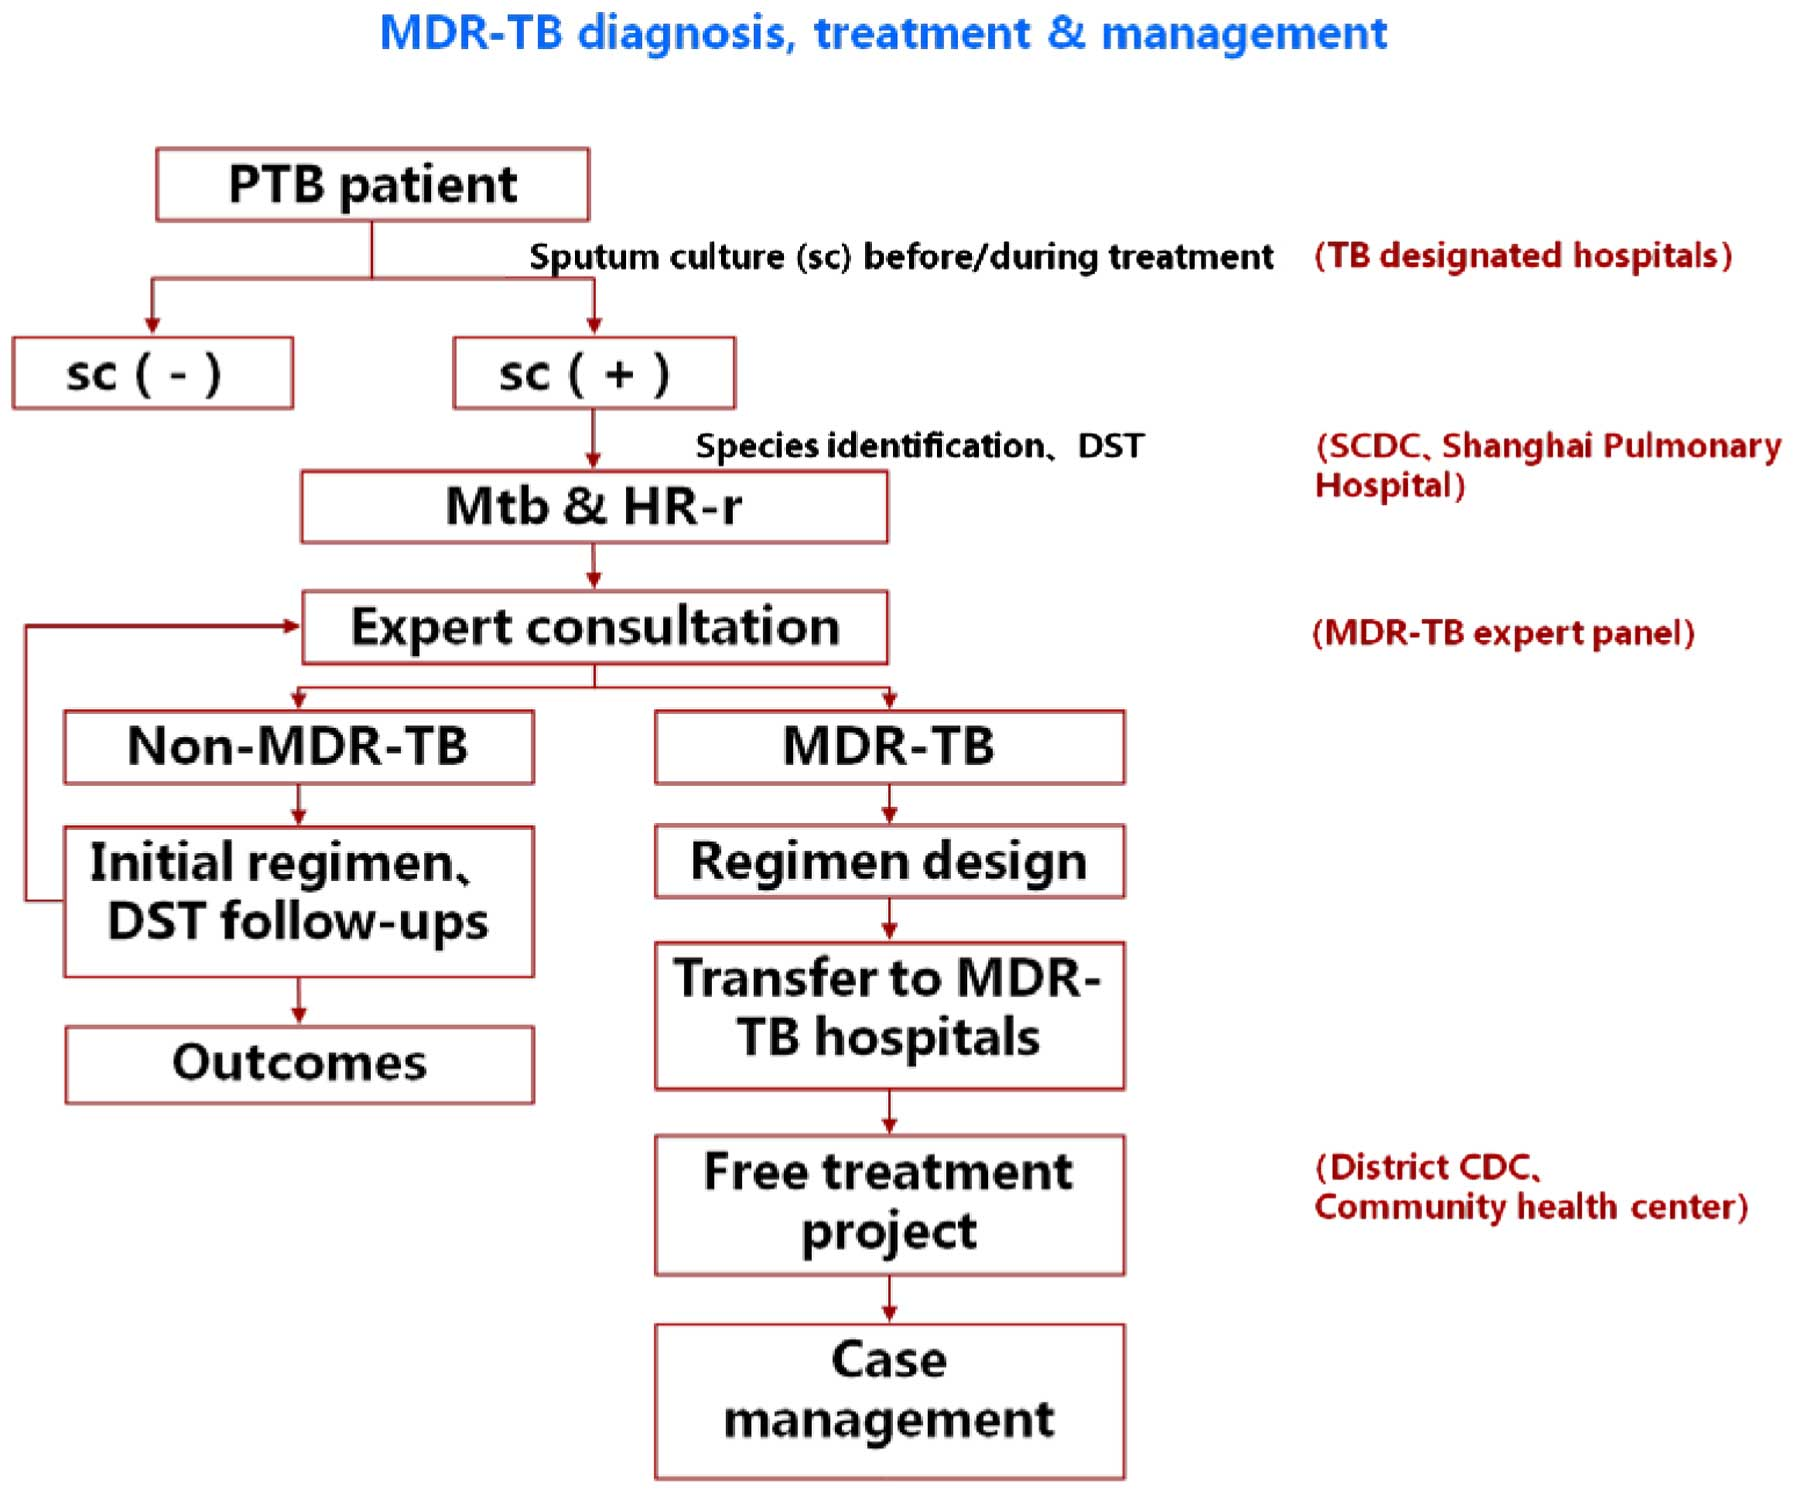 Efficacy and effect of free treatment on multidrugresistant flow chart of diagnosis and treatment mdr tb multidrug resistant tuberculosis dst drug susceptibility testing nvjuhfo Image collections